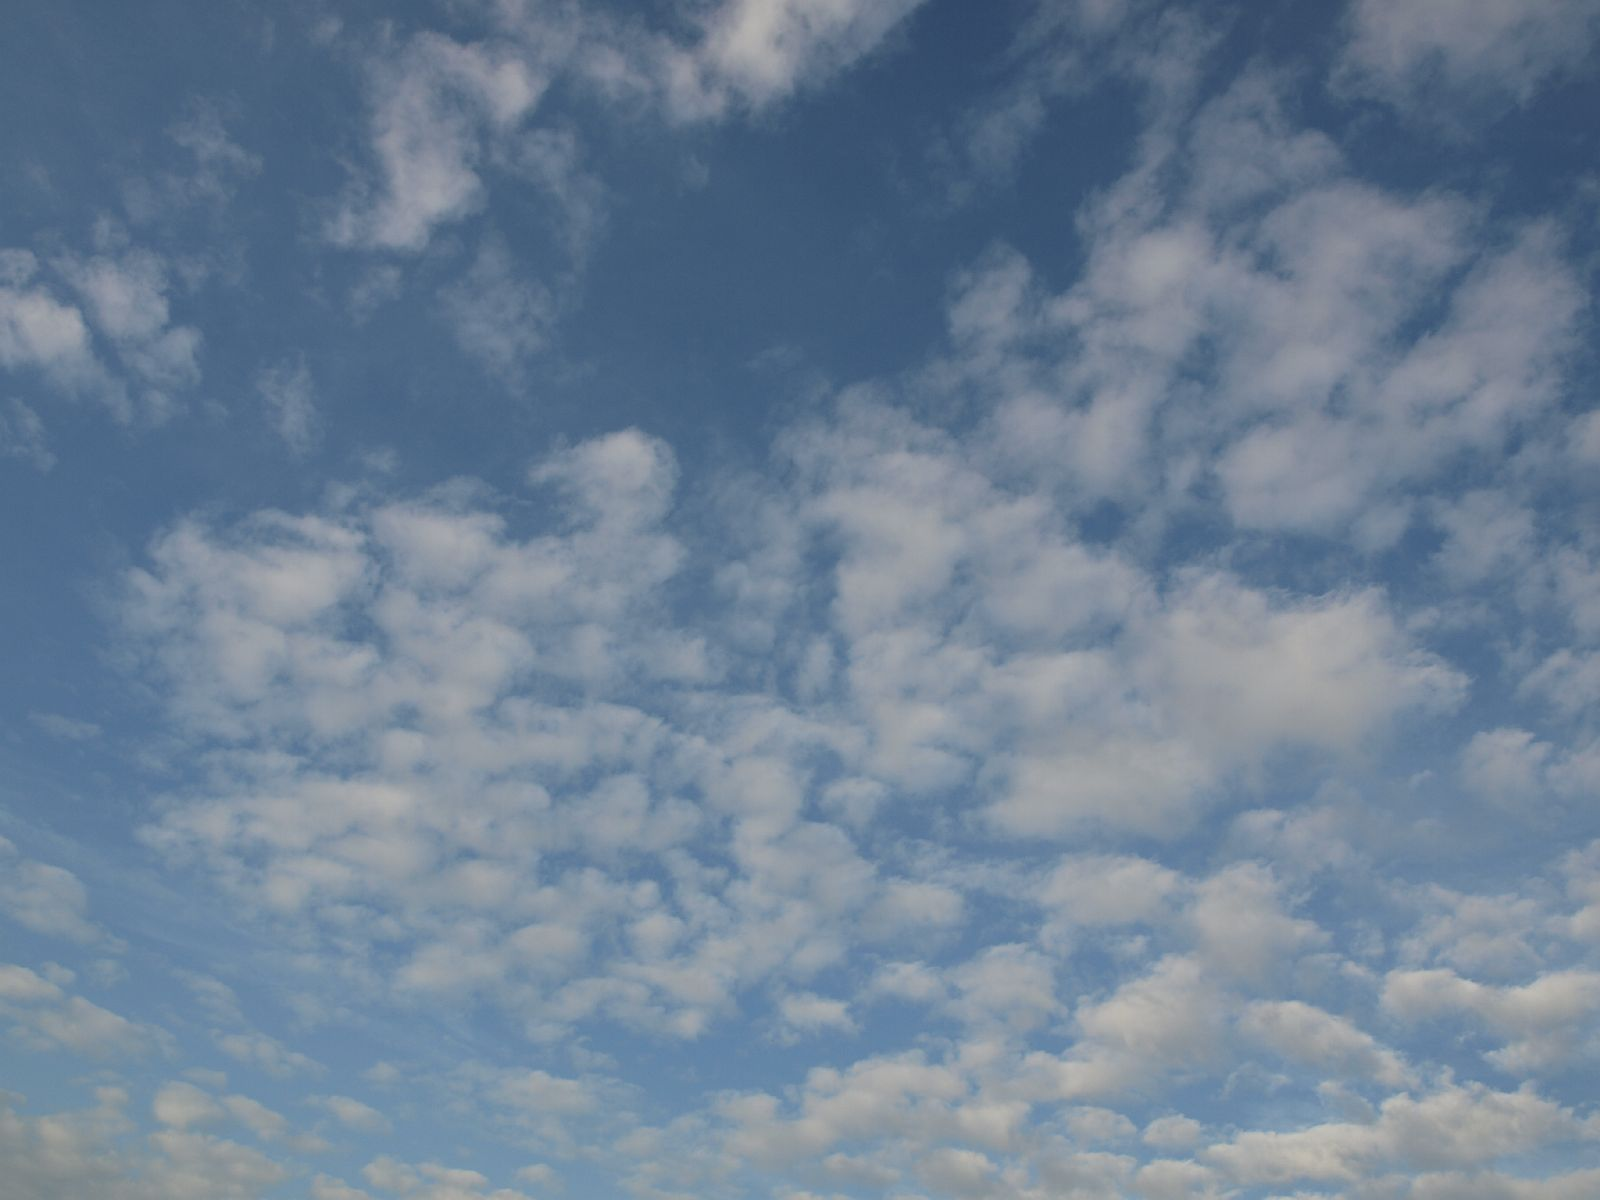 Sky_Clouds_Photo_Texture_A_P9114790